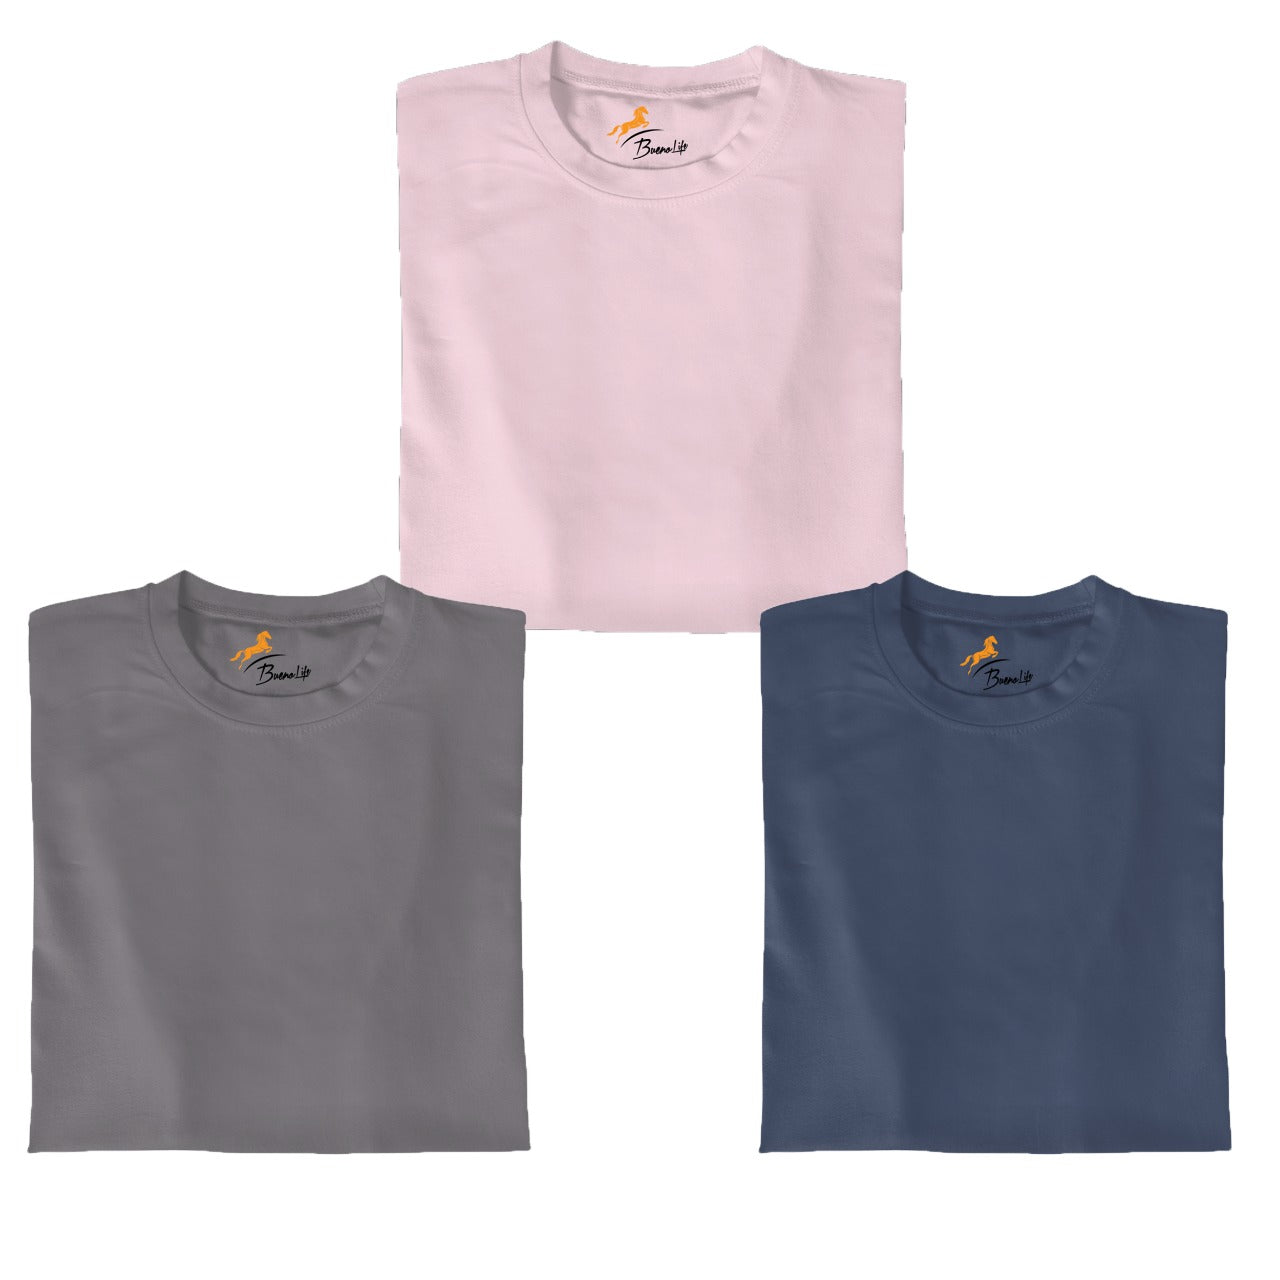 Pink+SteelGray+Petrolblue  Pack Of 3 T-shirt